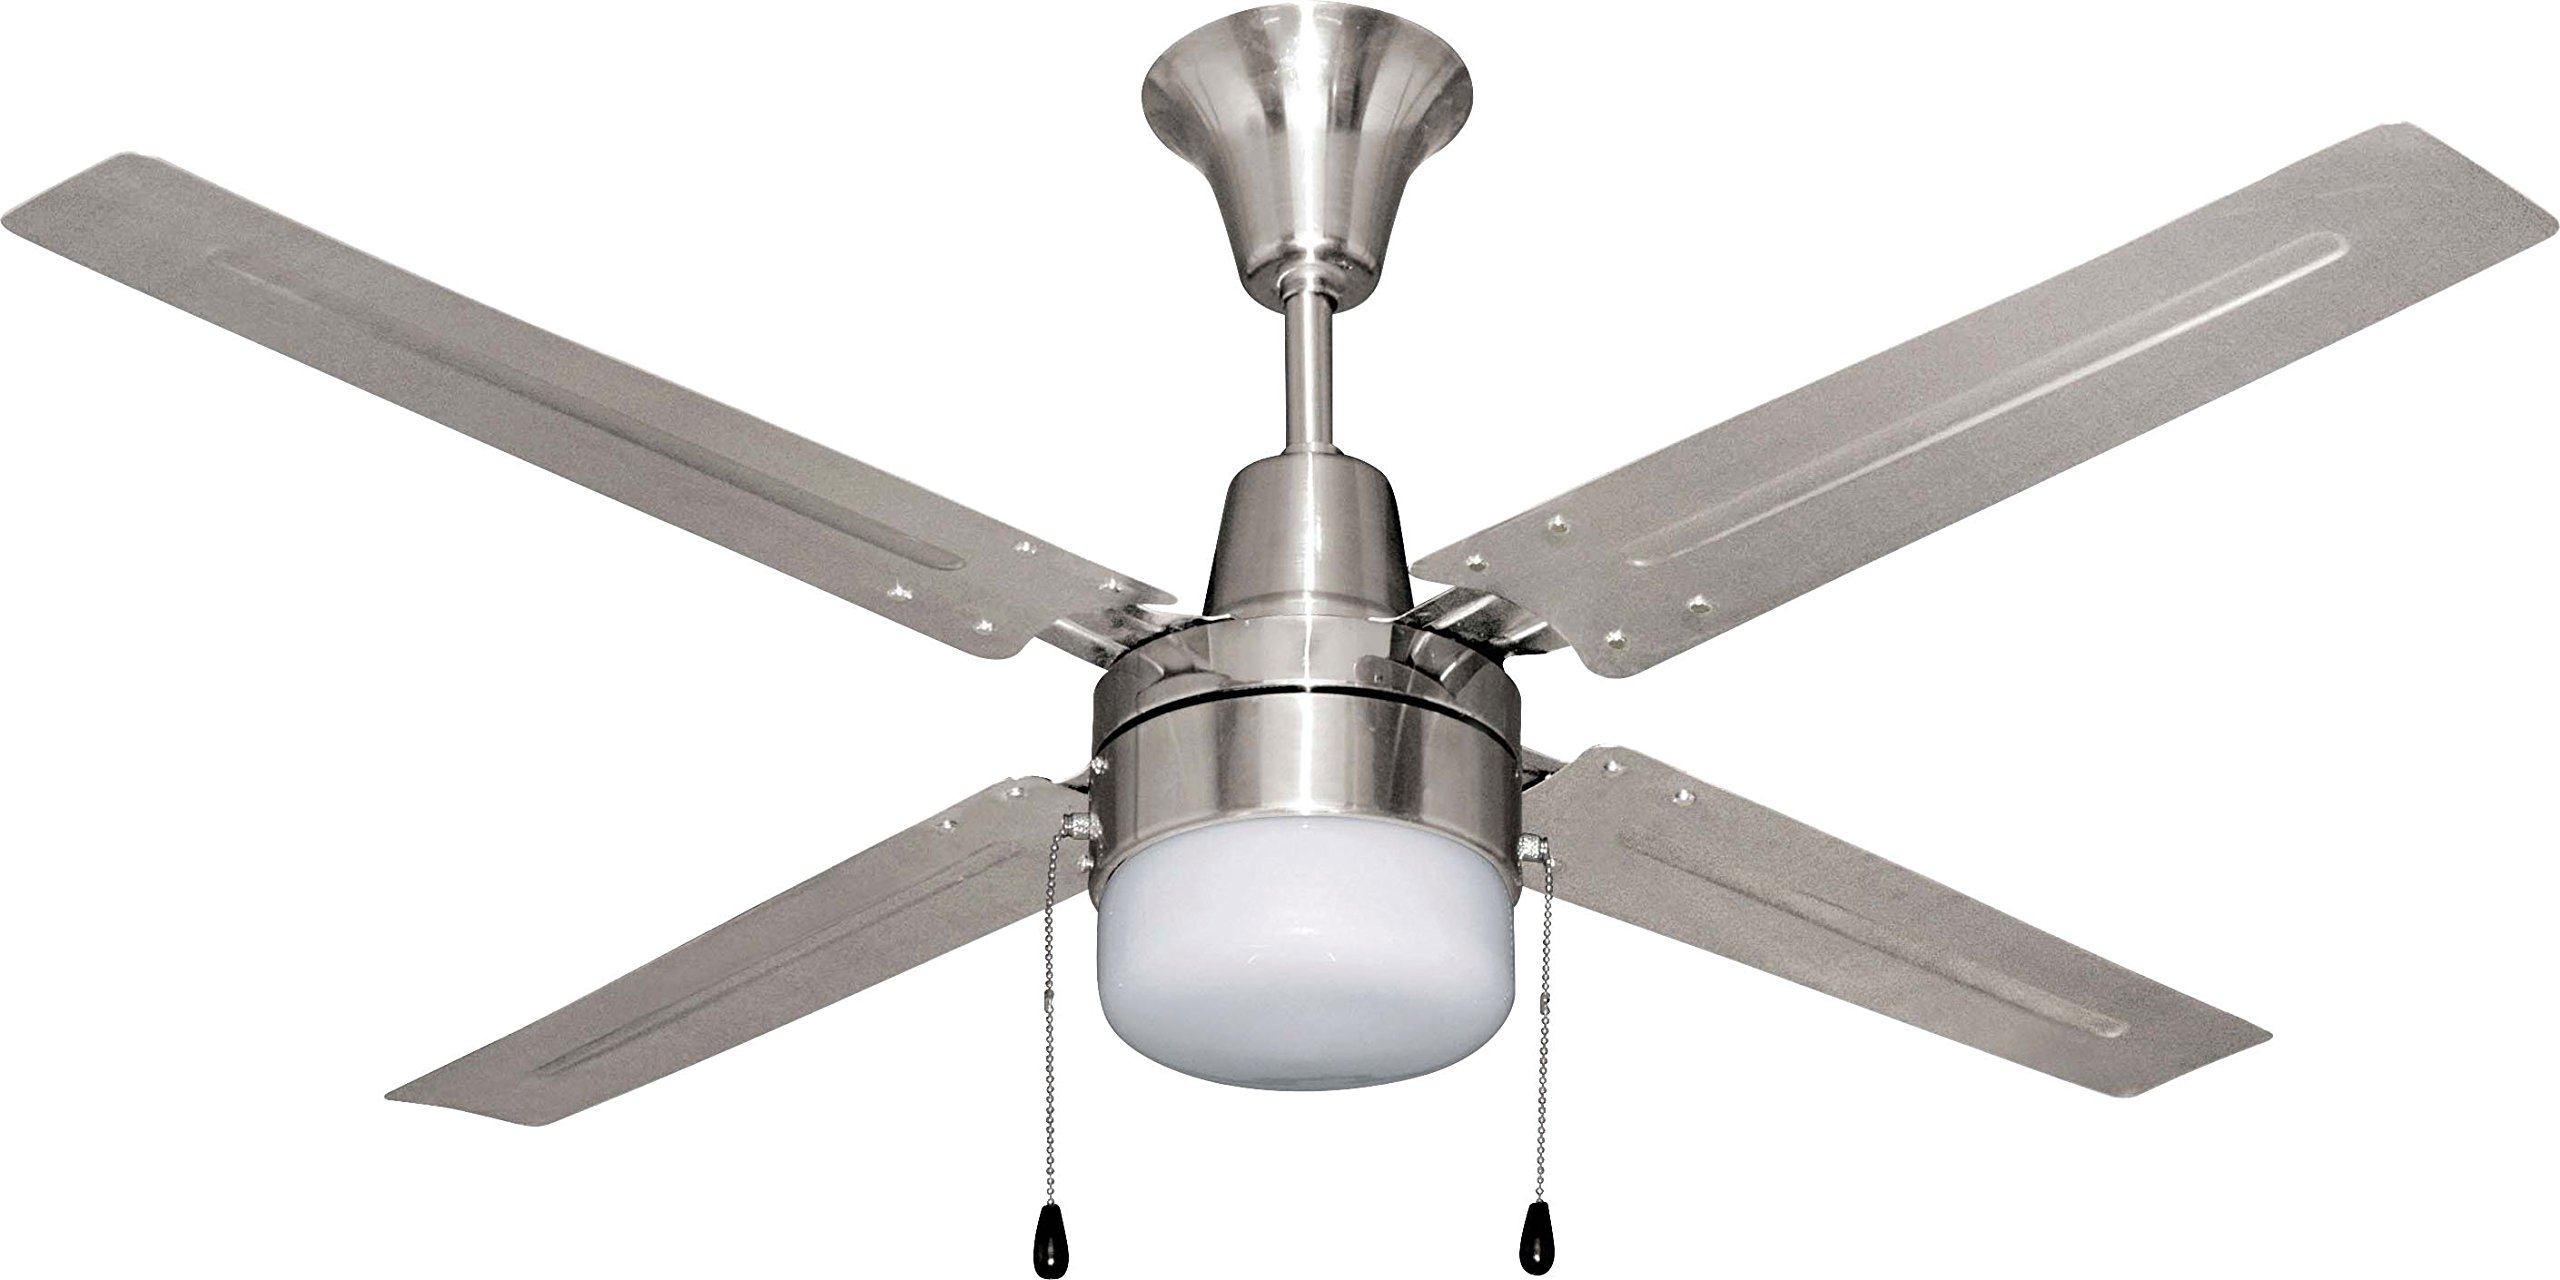 Litex E-UB48BC4C1 Urbana 48-Inch Ceiling Fan with Four Brushed Chrome Blades and Single Light Kit with frosted Glass by Litex